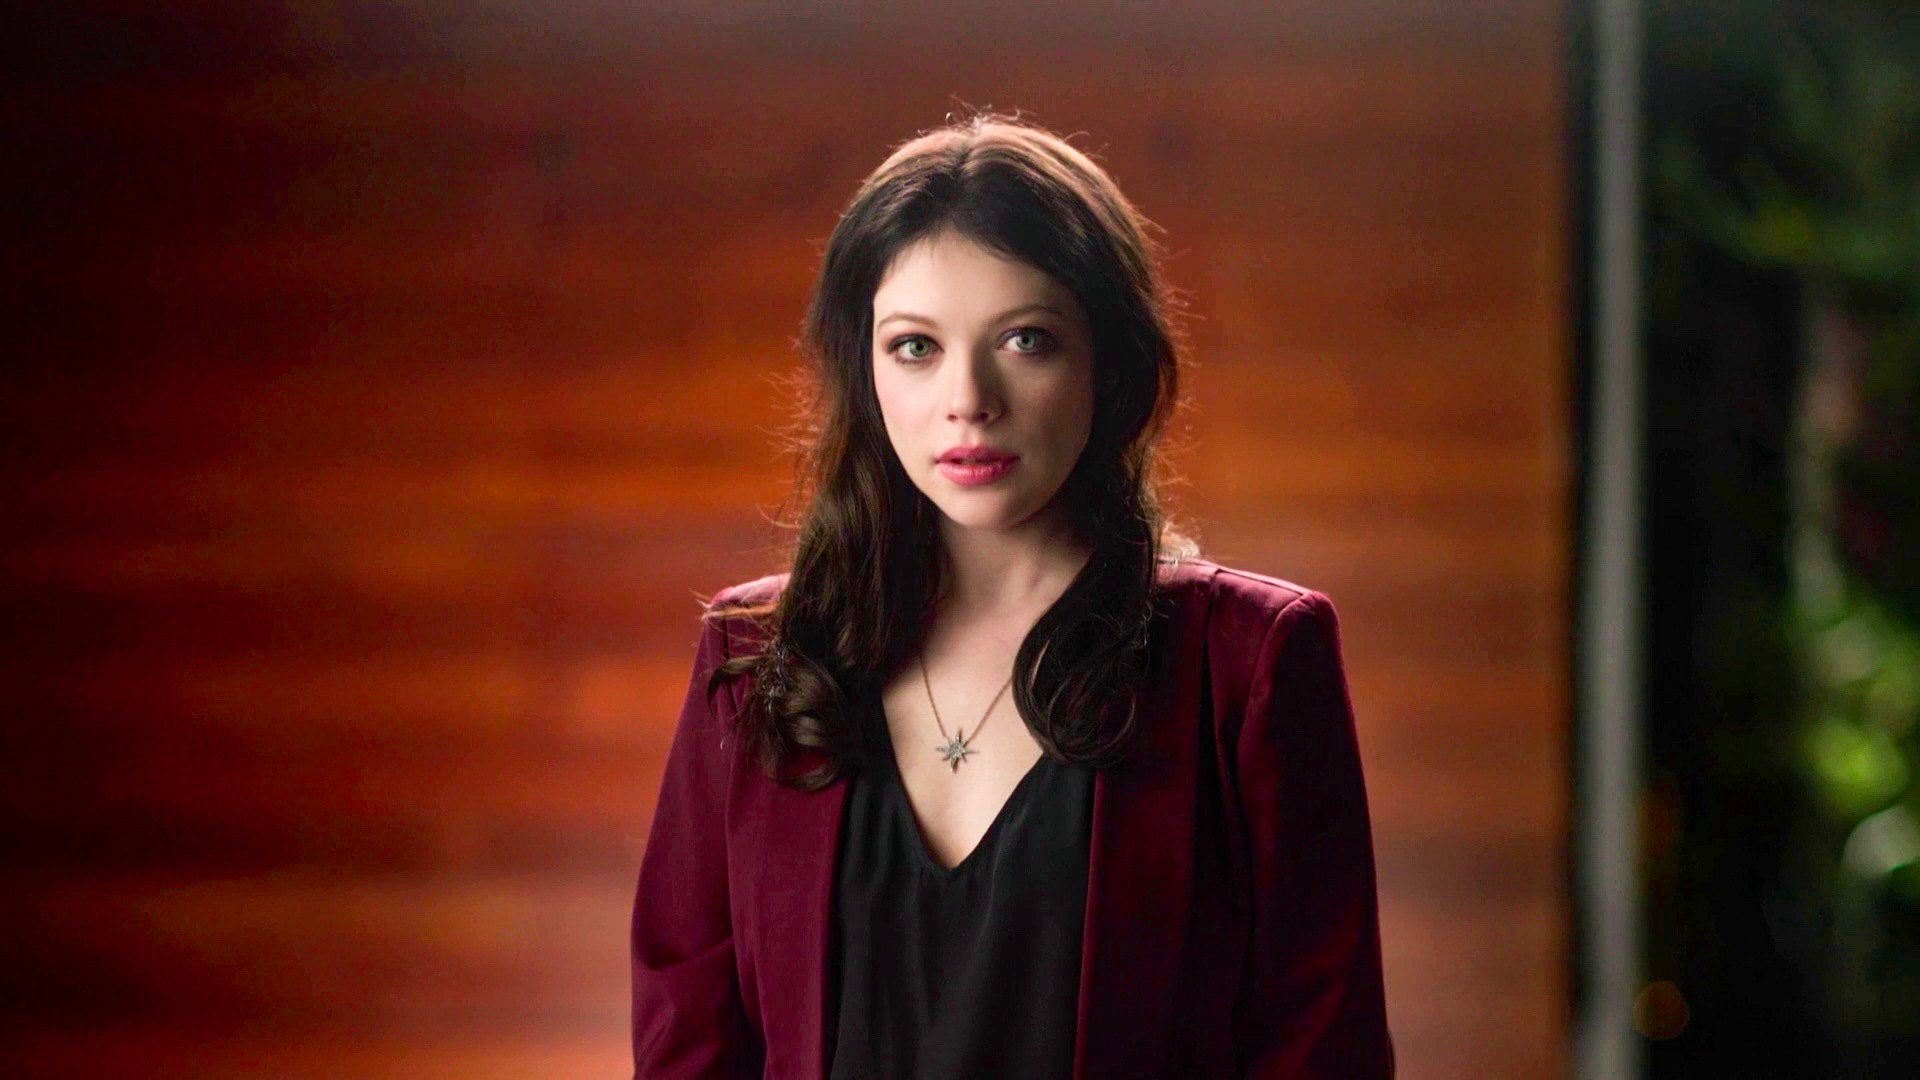 """TUBI ANNOUNCES NEW TRUE CRIME DOCUSERIES  """"MEET, MARRY, MURDER,"""" HOSTED BY MICHELLE TRACHTENBERG,  TO DEBUT ON WEDNESDAY, OCTOBER 6"""